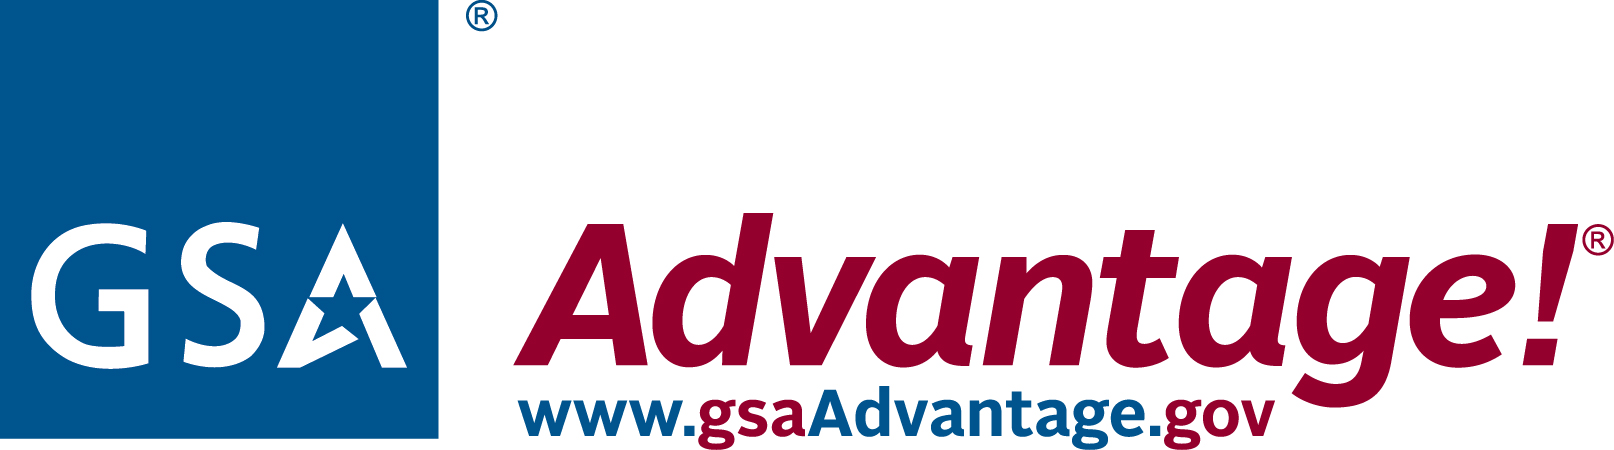 GSA Advantage Link